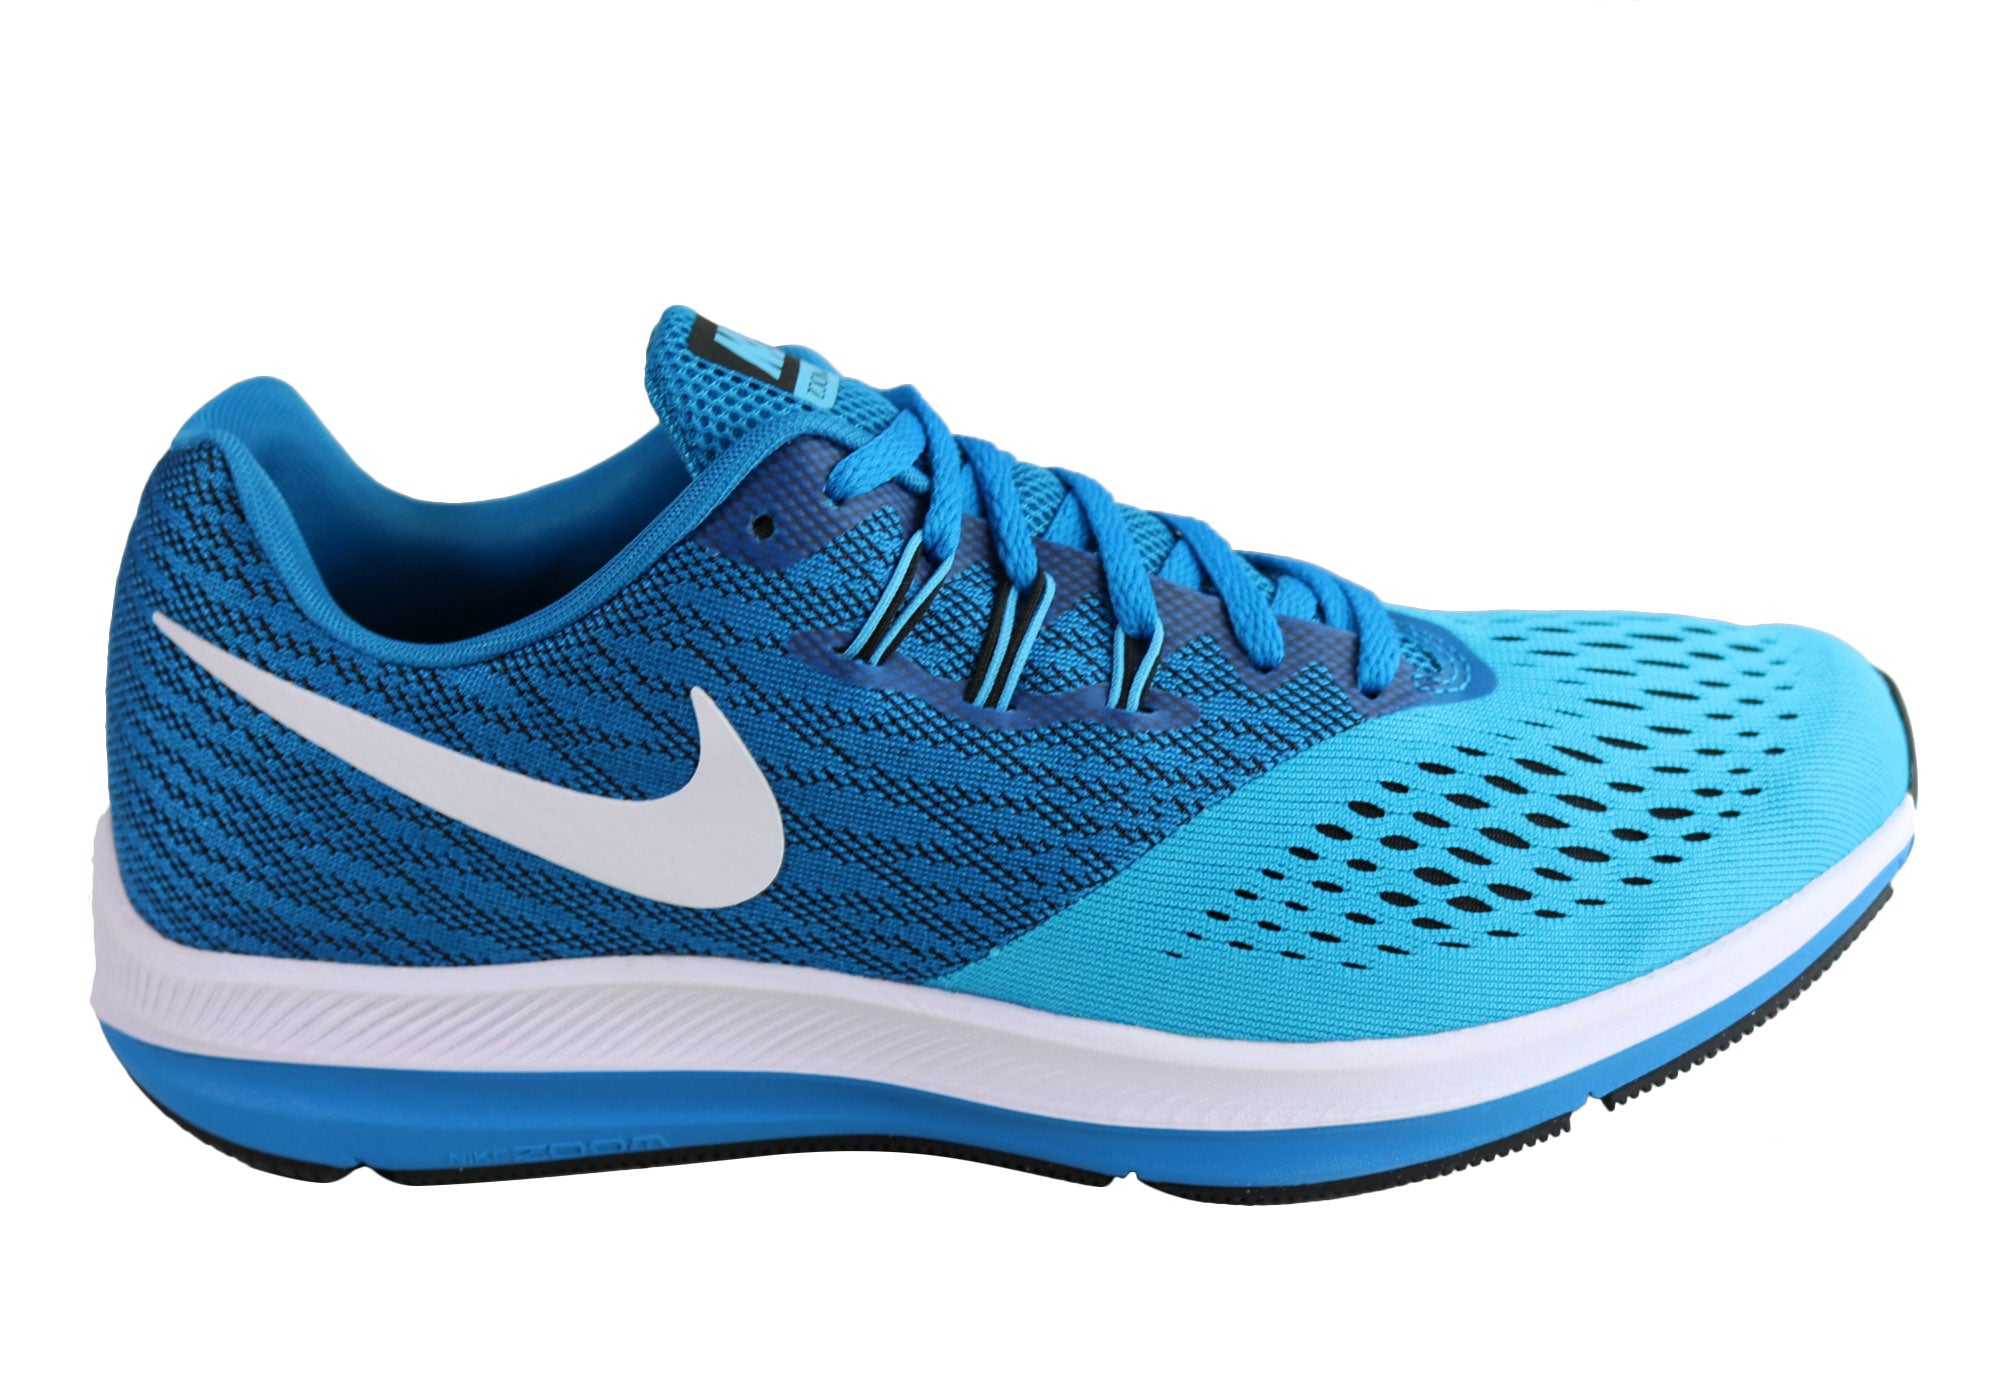 9014daf924bb Home Nike Zoom Winflo 4 Mens Comfortable Running Sport Shoes. Blue Orbit ...